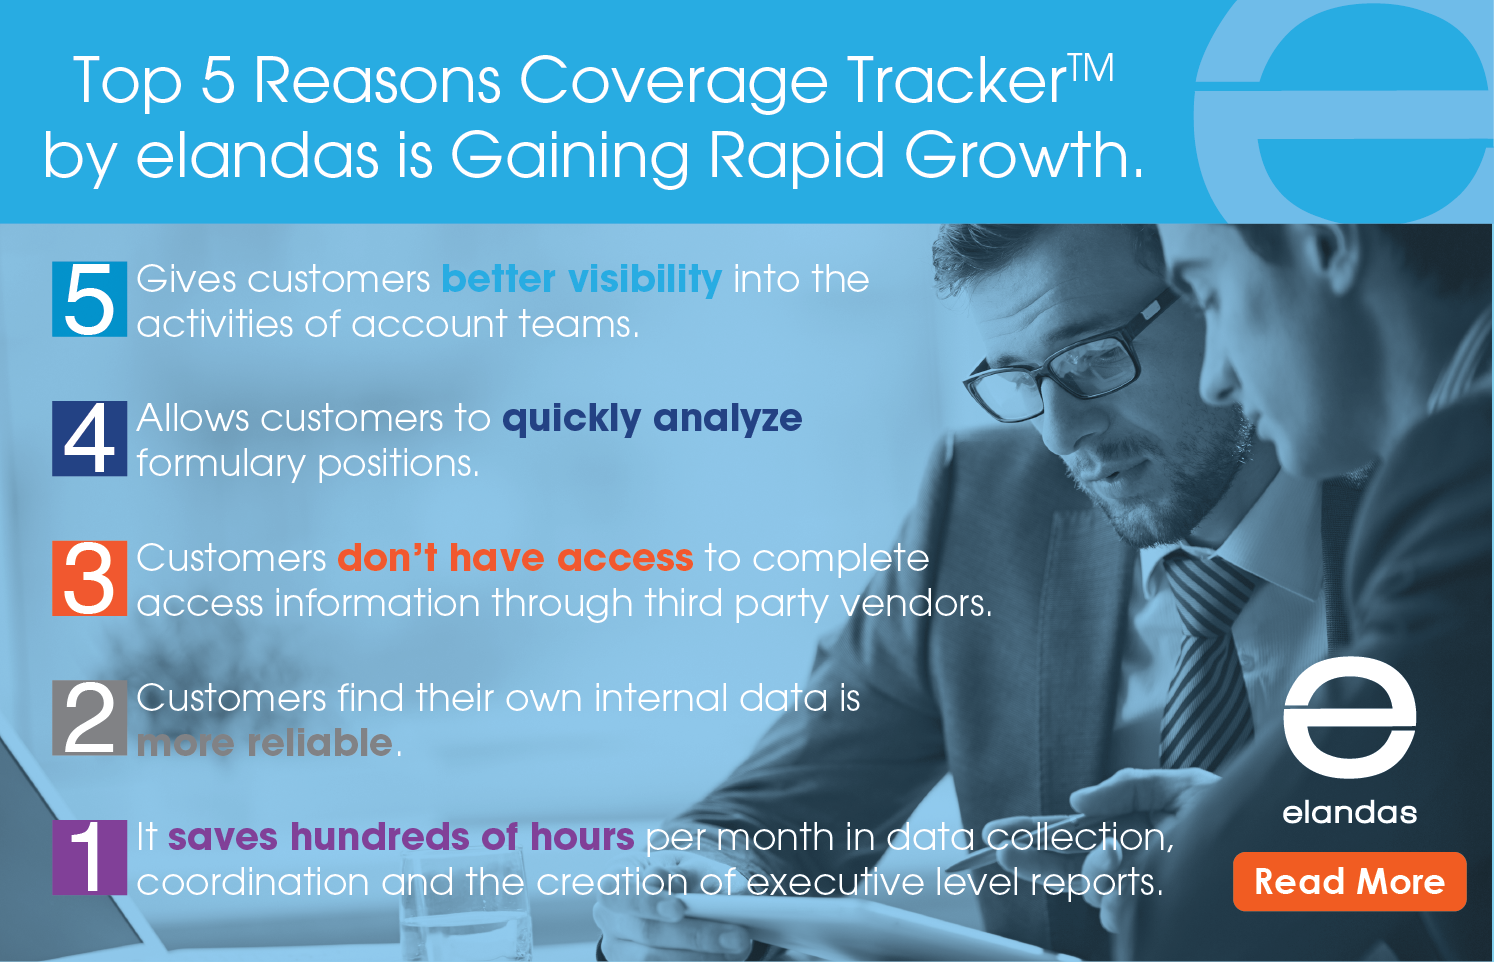 Learn more about why Coverage Tracker is gaining in popularity